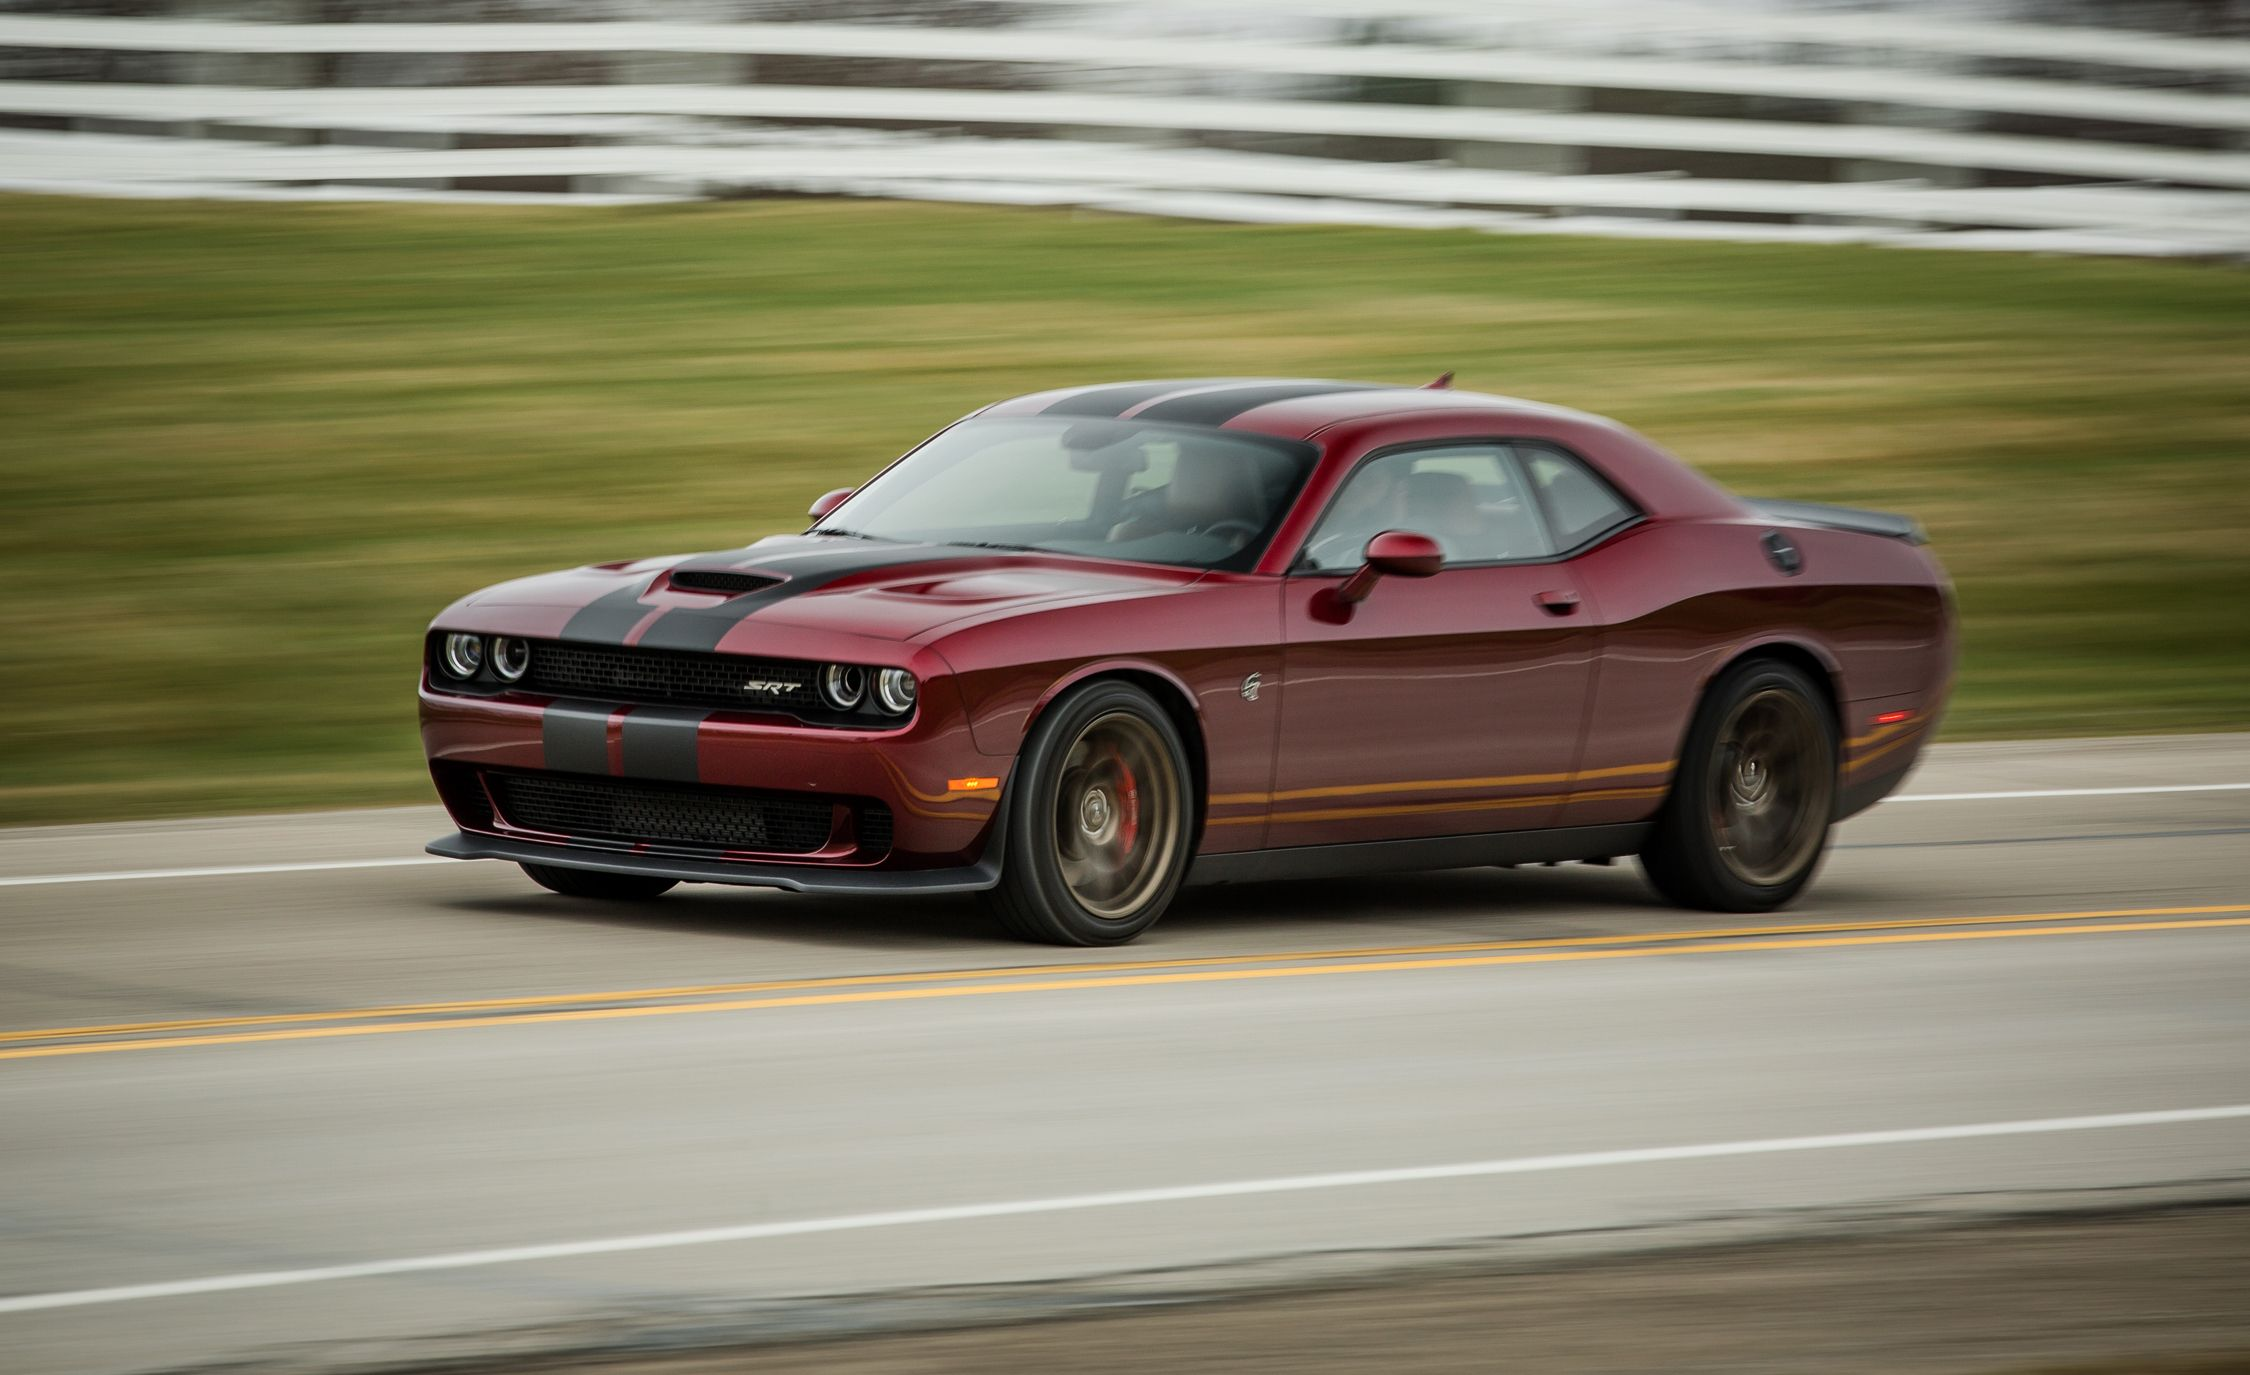 2015 Dodge Challenger Srt Hellcat First Drive Review Car And Driver